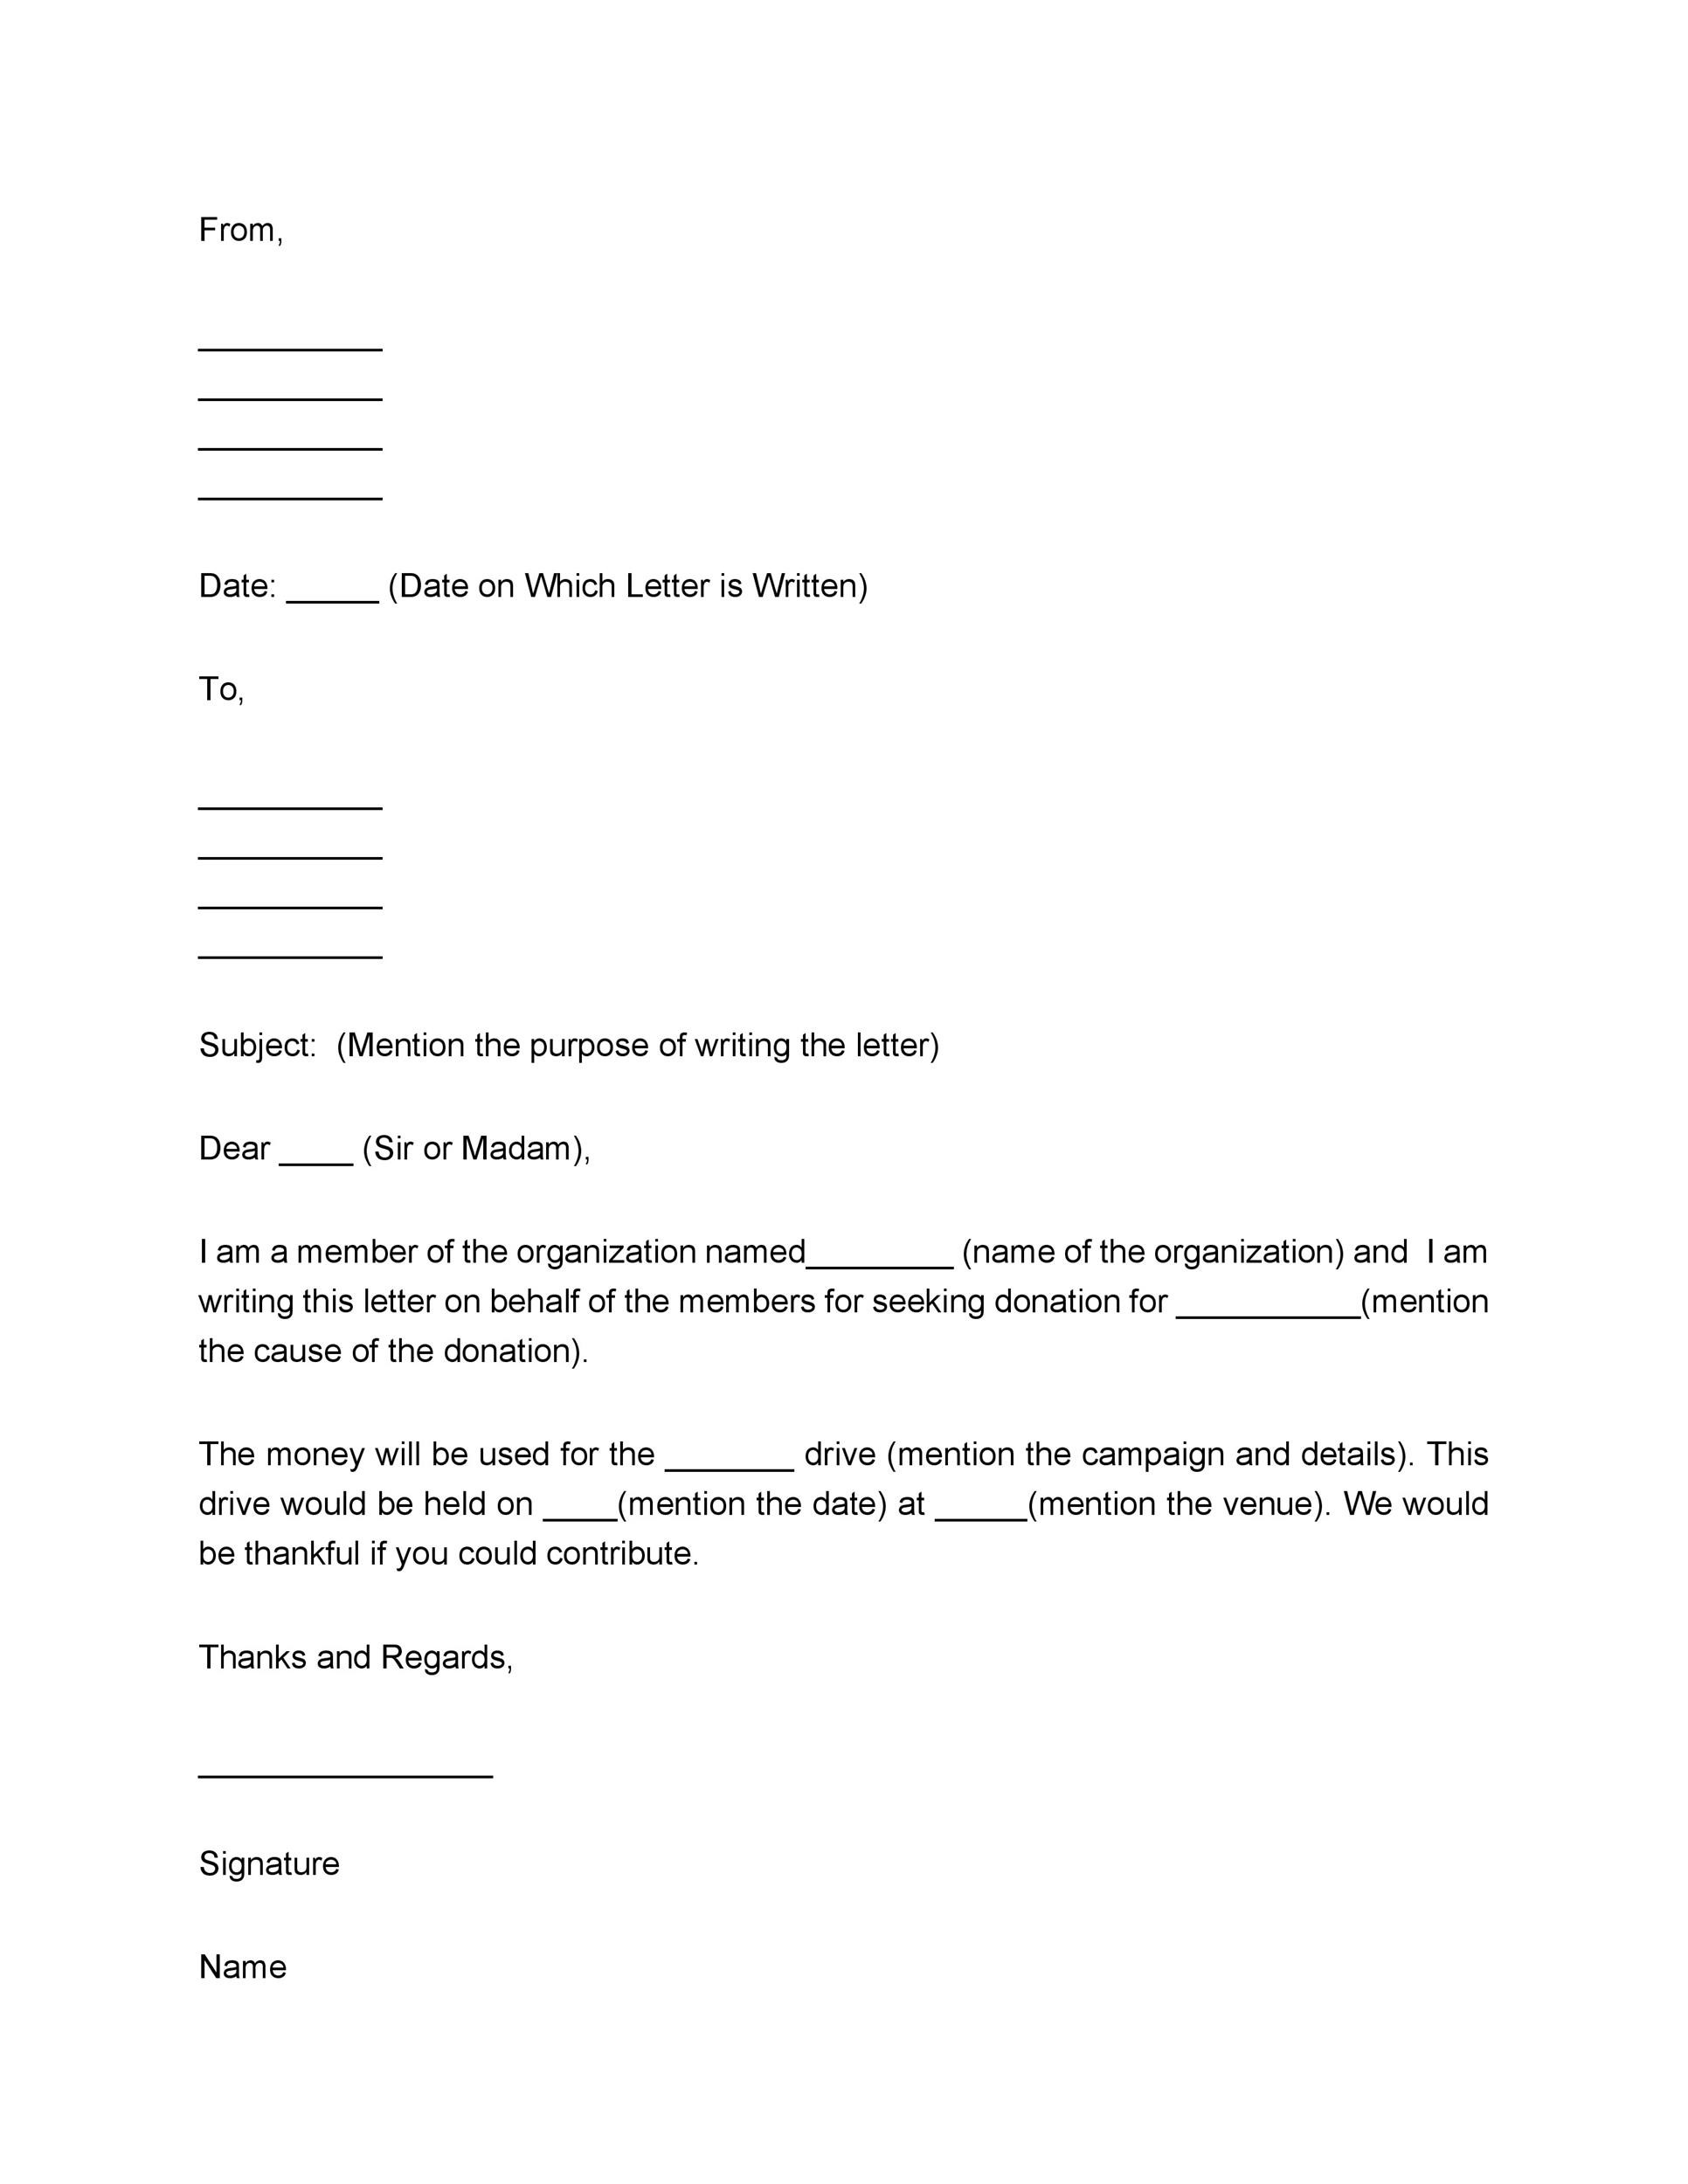 43 FREE Donation Request Letters  Forms - Template Lab